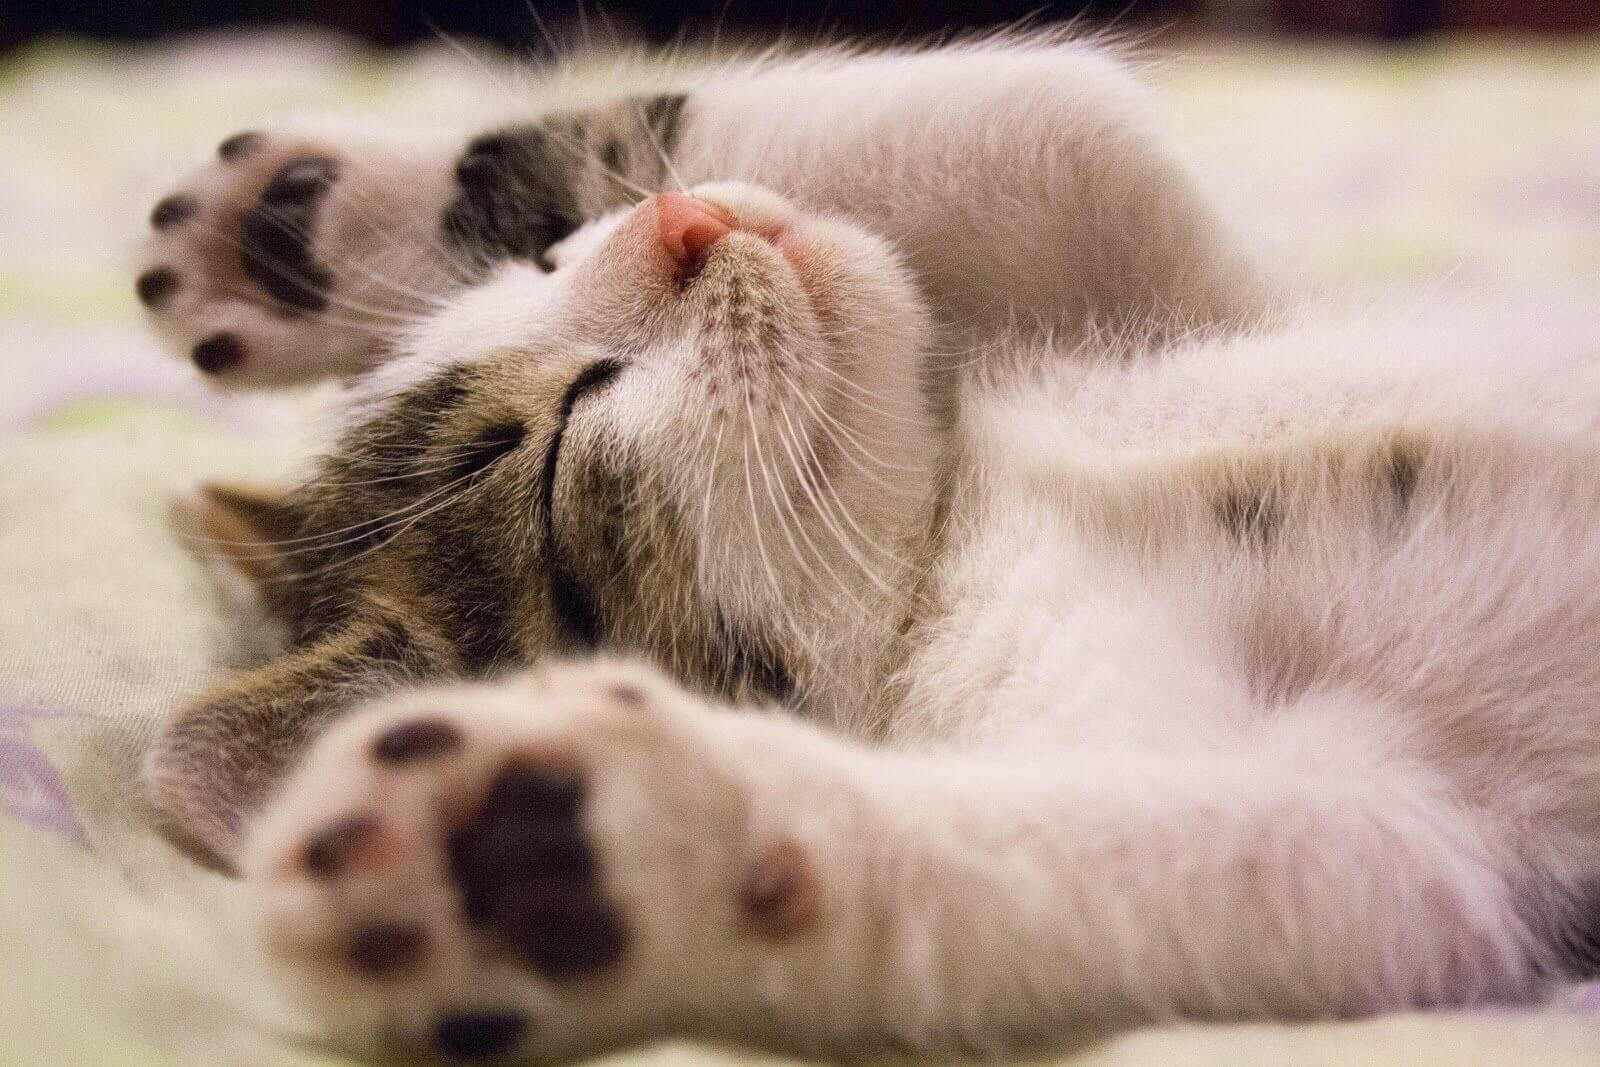 A happy kitten laying on its back.